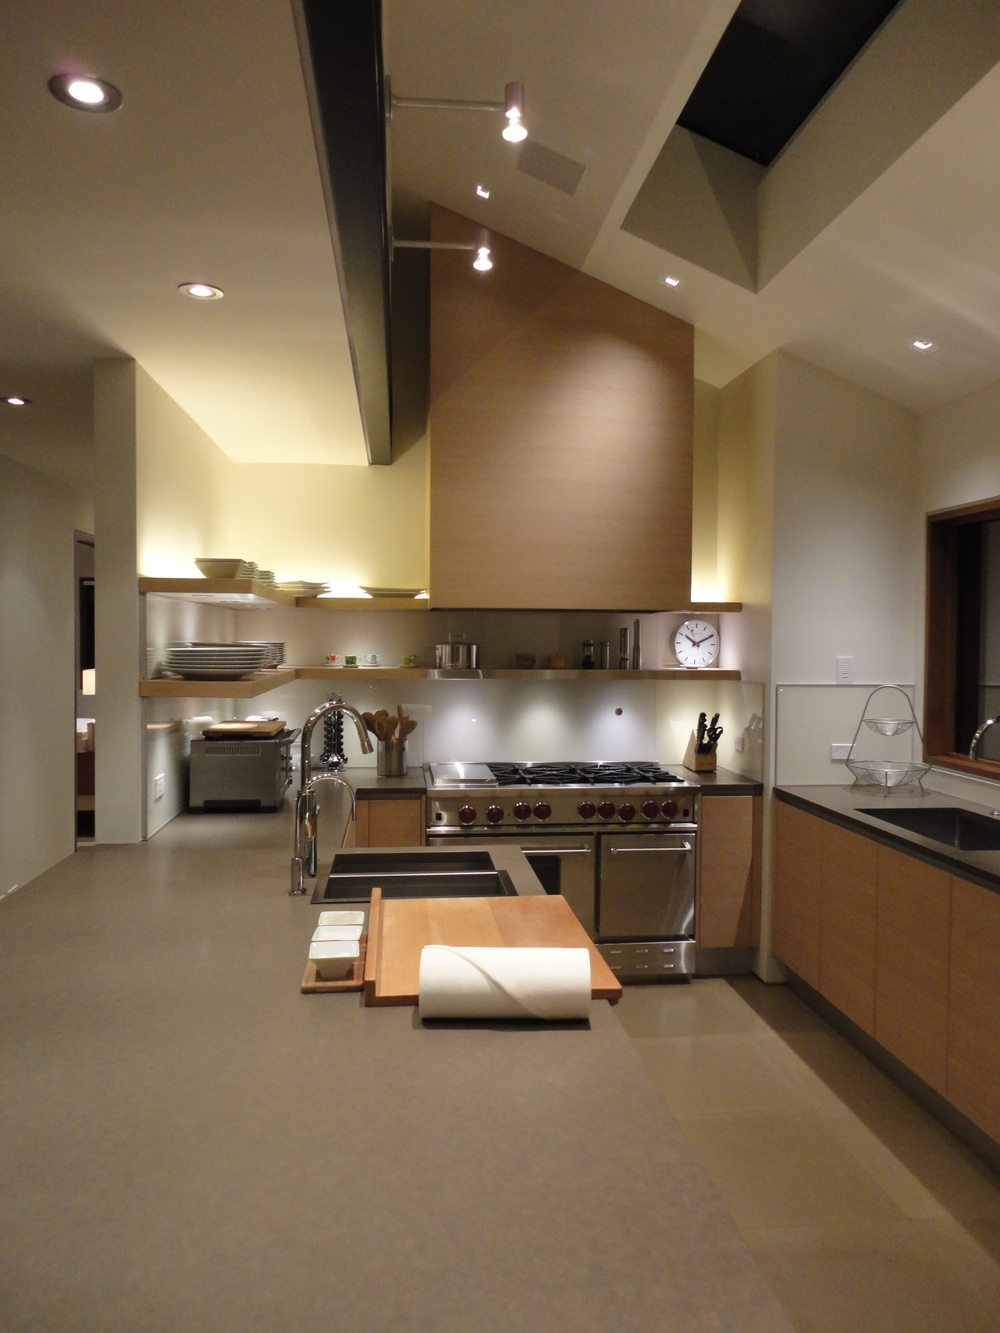 12-Kitchen after aiming.jpg